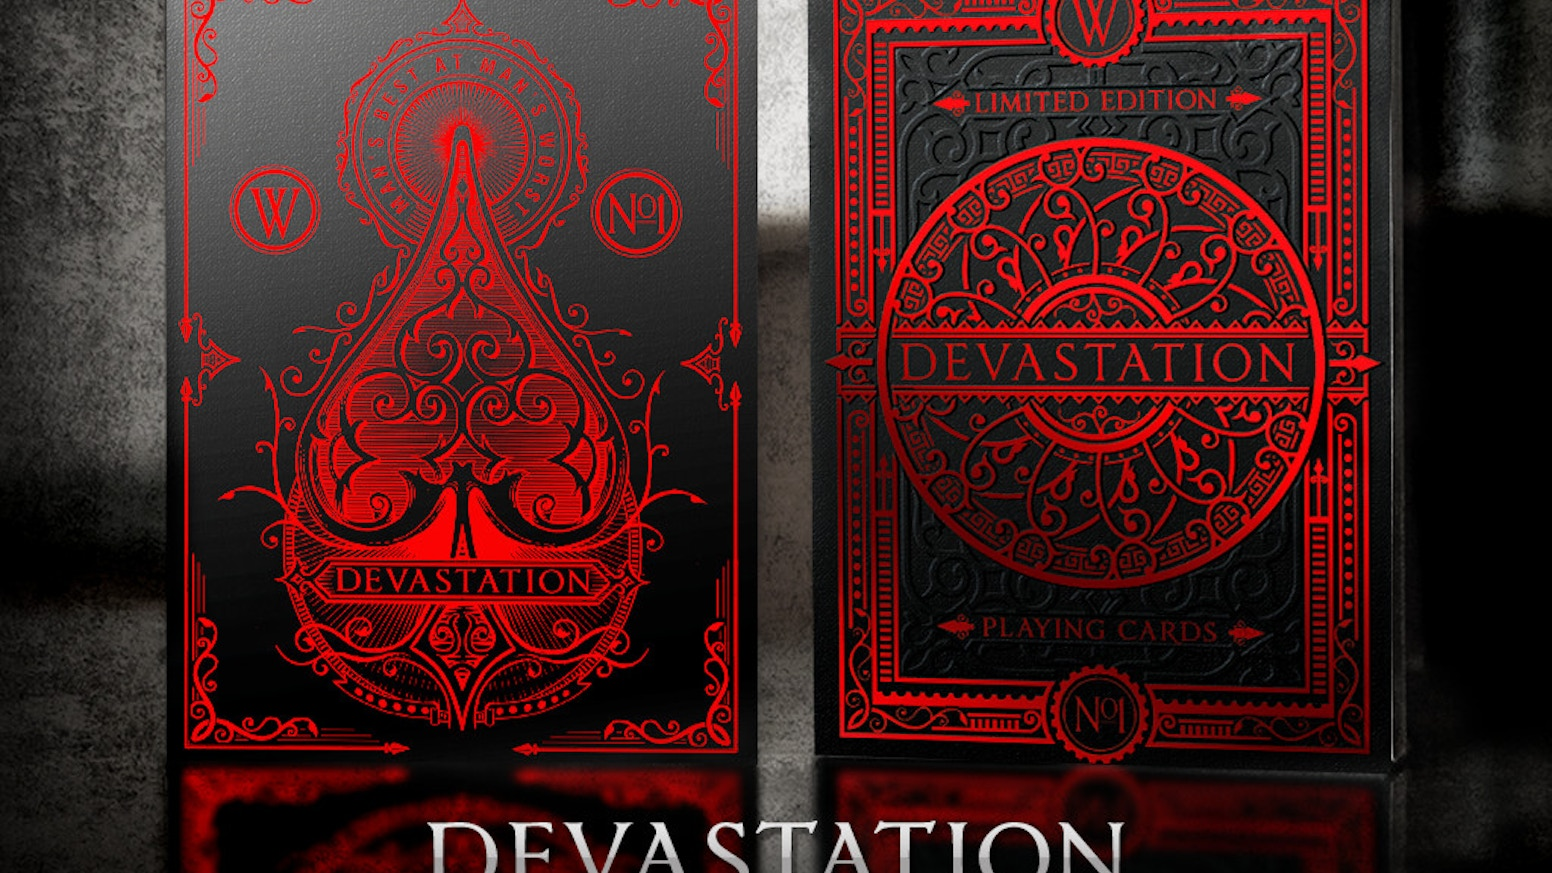 An elegant set of playing cards that depict the men who invented weapons of devastation and the women who rescued the victims.